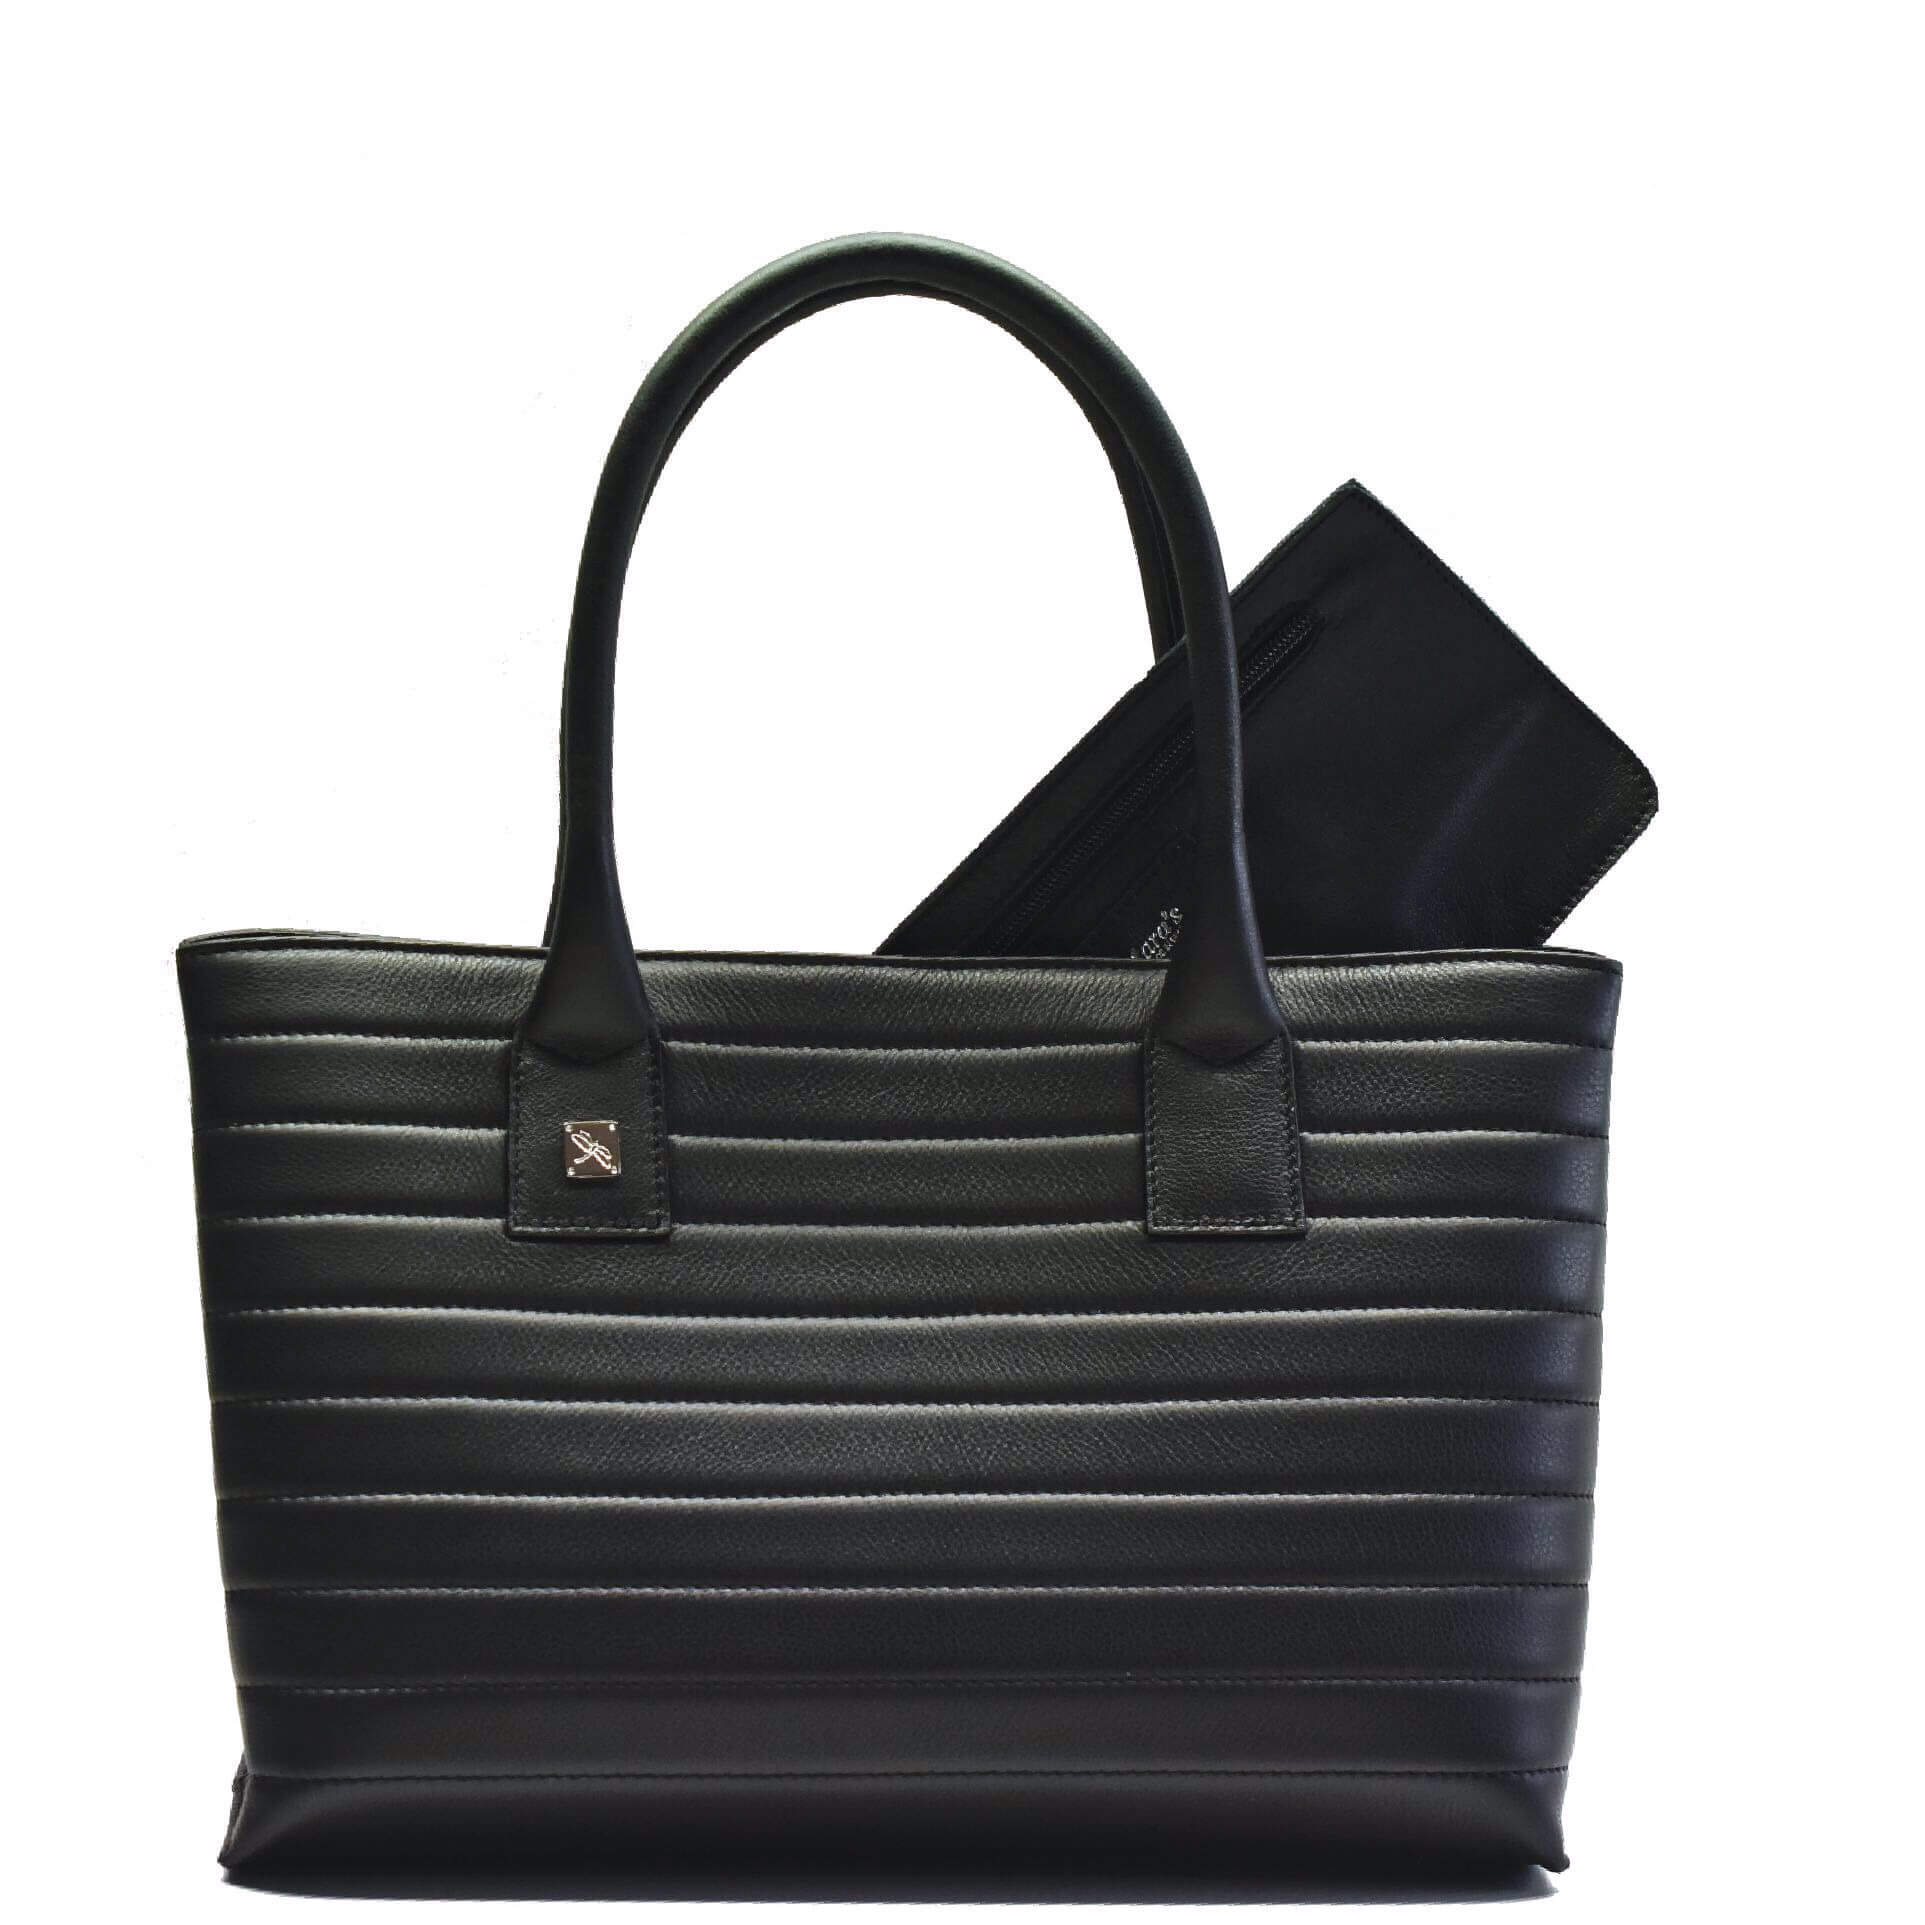 Black Tote Leather Handbag. Natalia S